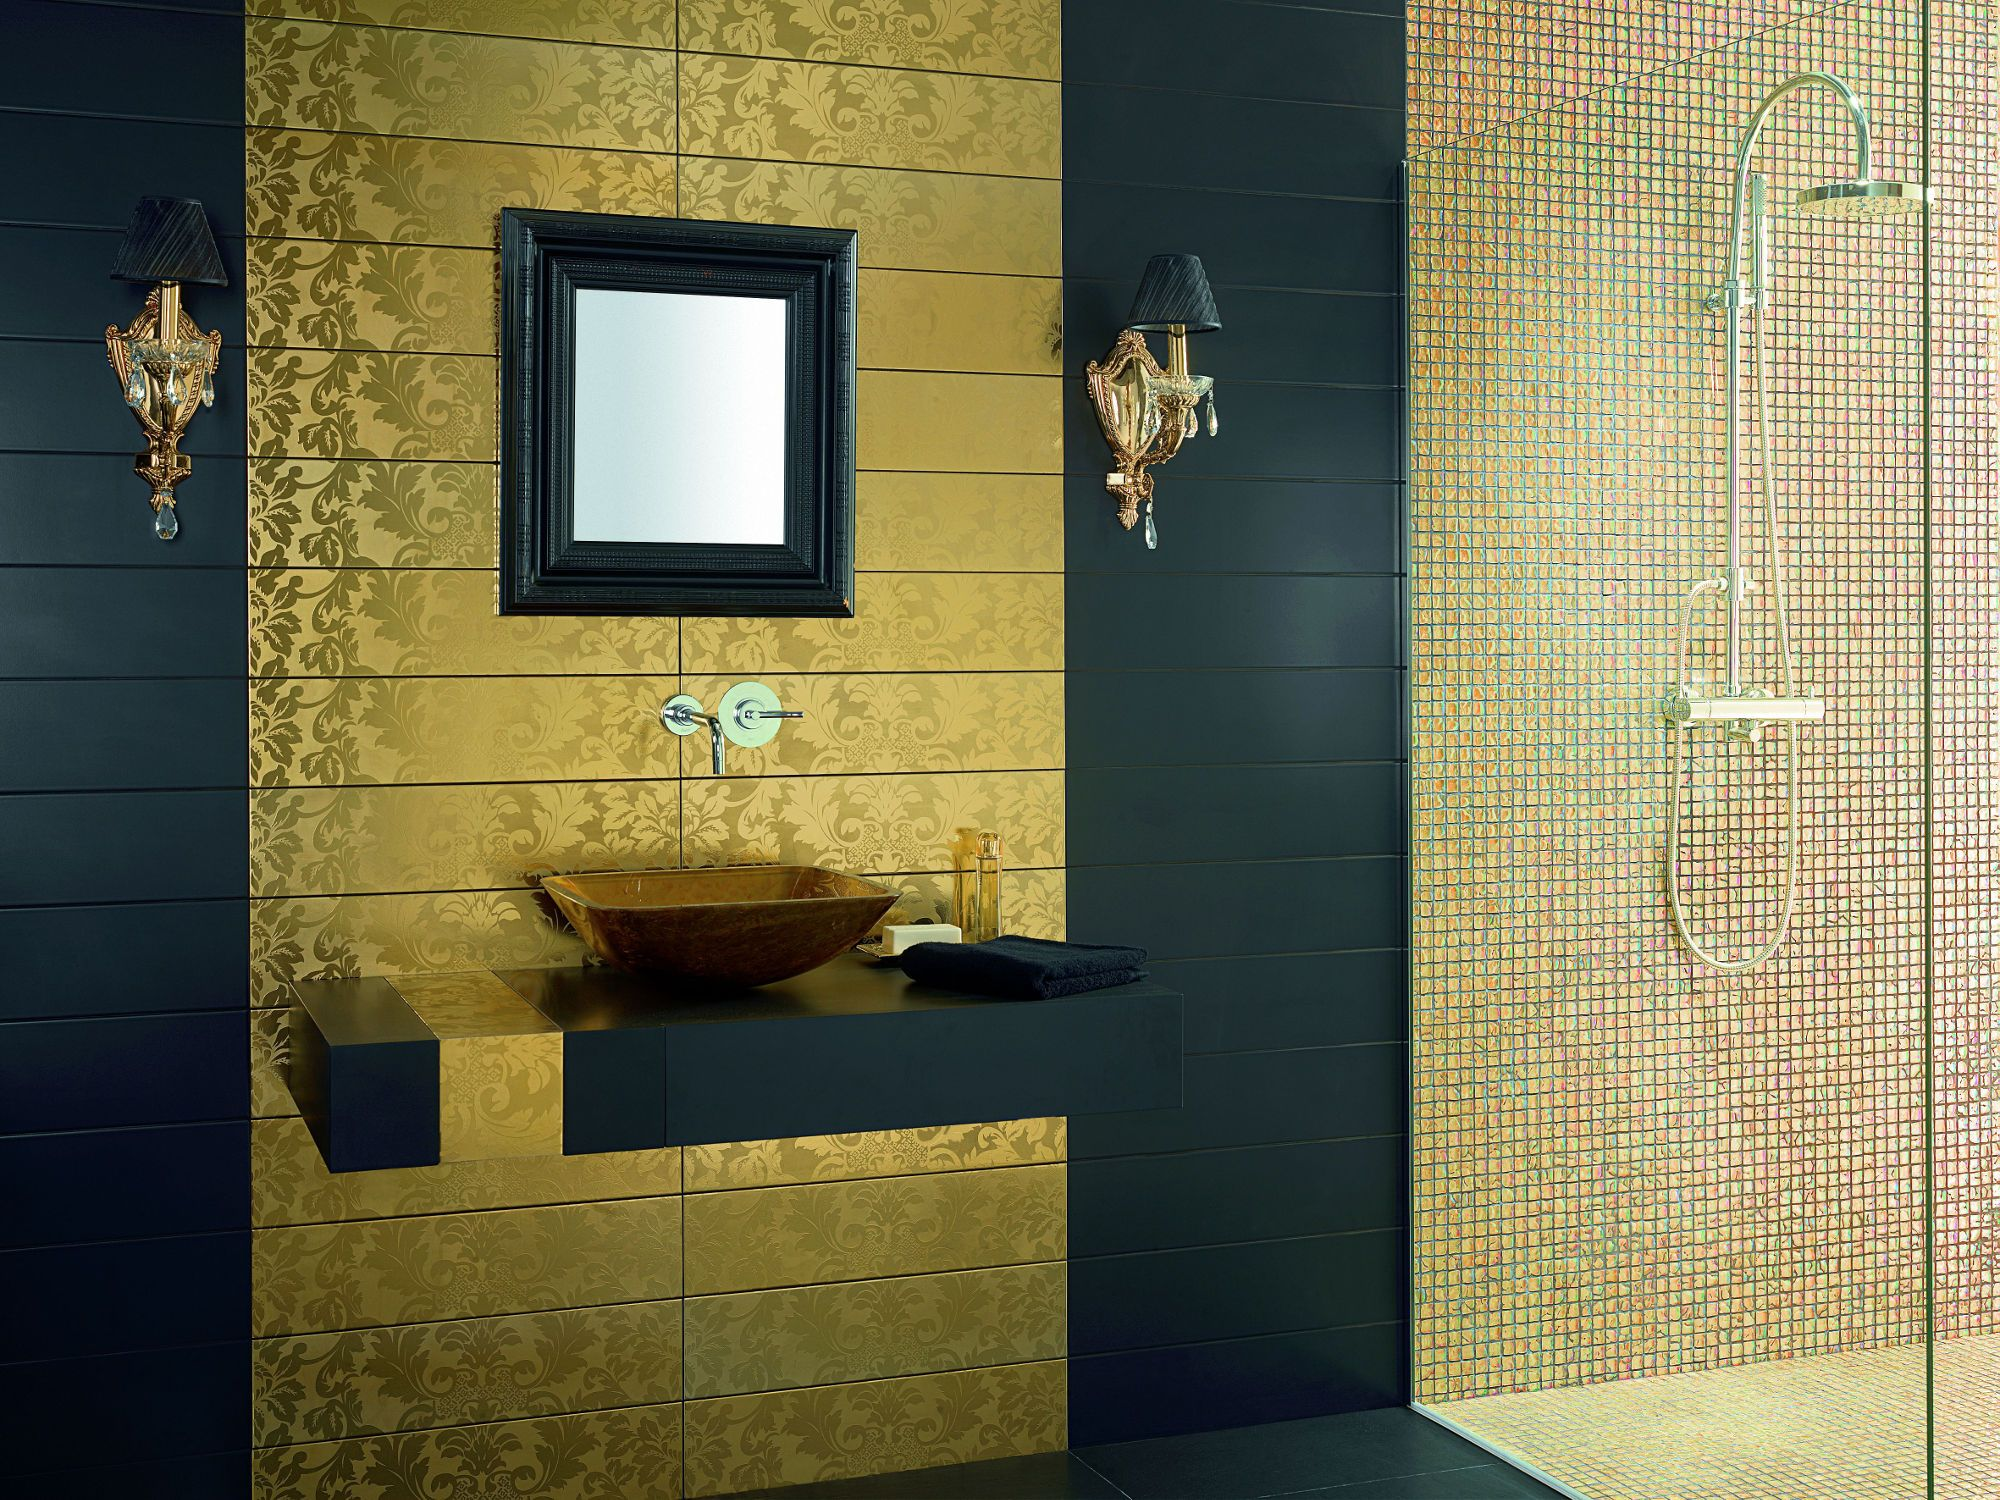 Magnificent Decorative Bathroom Wall Tile Designs Ideas - The Wall ...